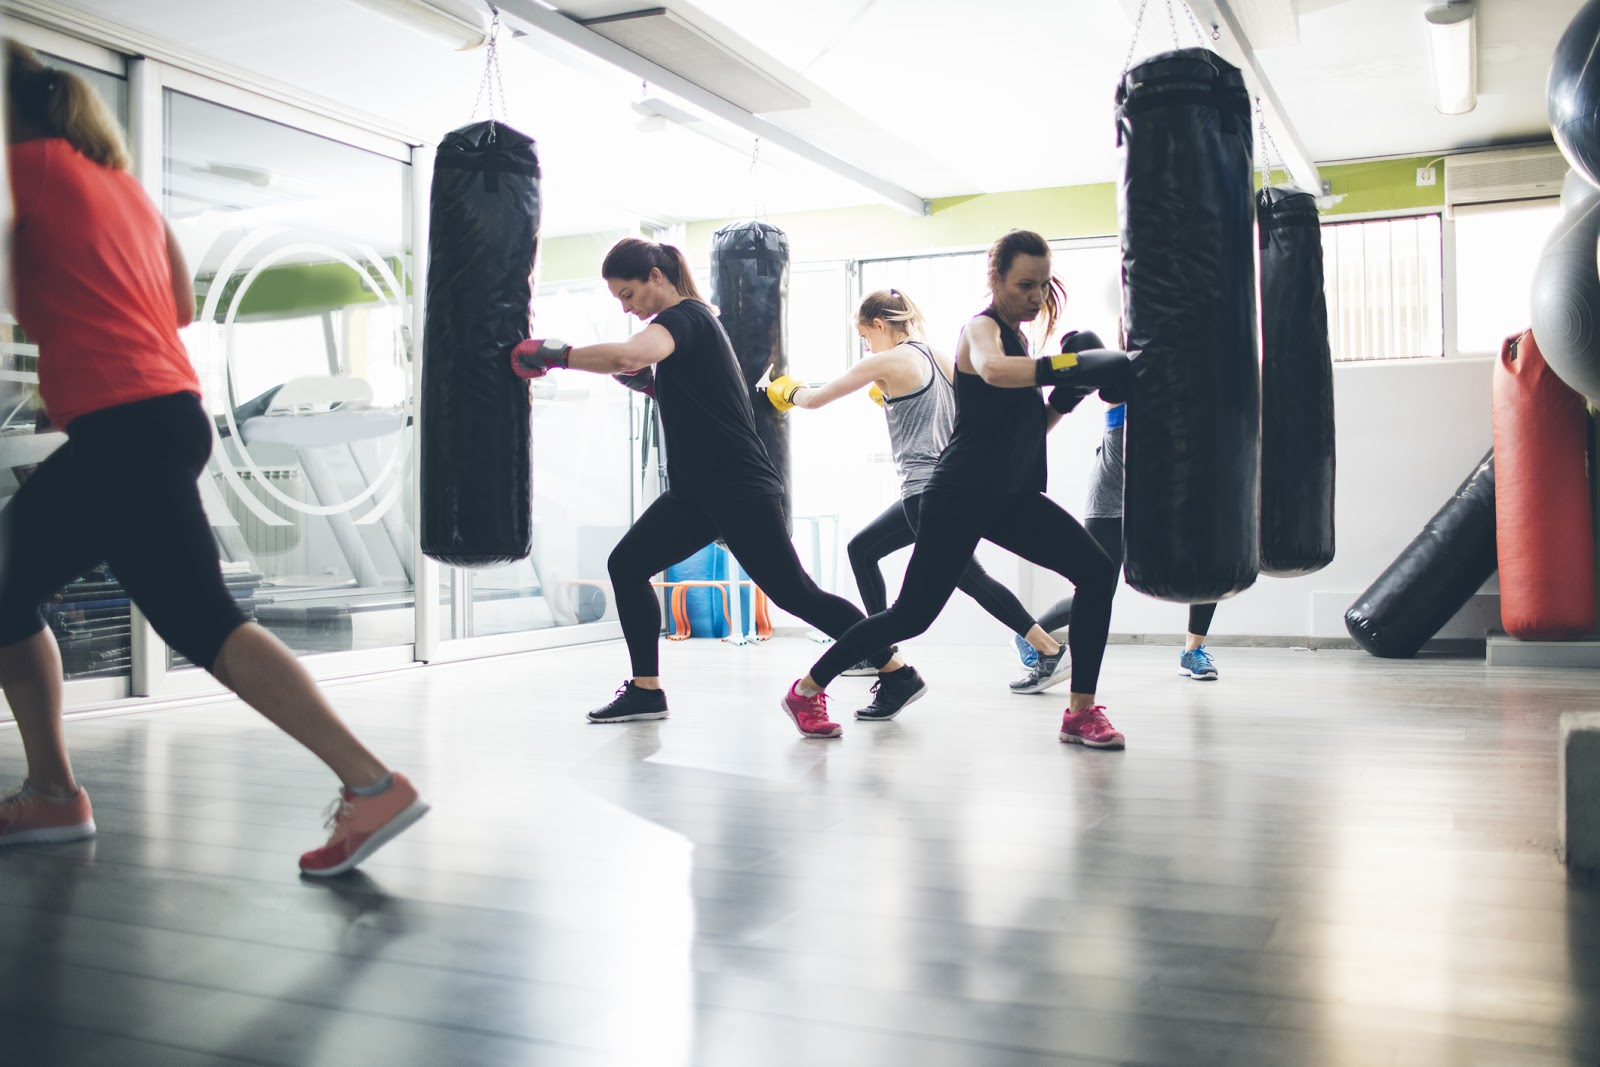 Boxing class with multiple heavy bags suspended from the ceiling and people training hard.